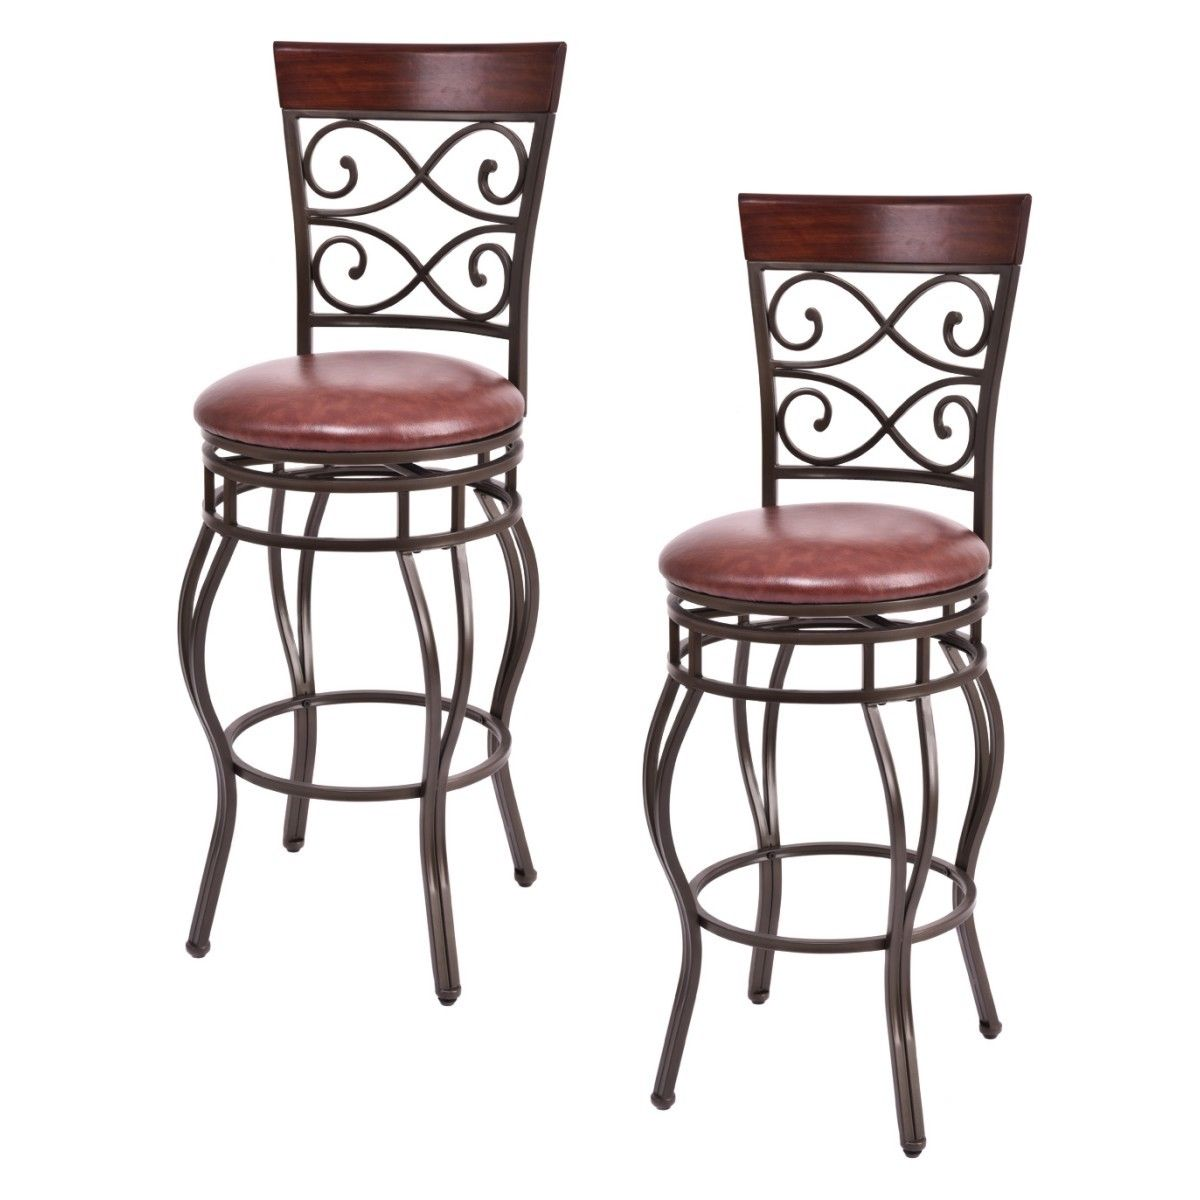 Costway Set of 2 Vintage Bar Stools Swivel Padded Seat Bistro Dining Kitchen Pub Chair by Costway